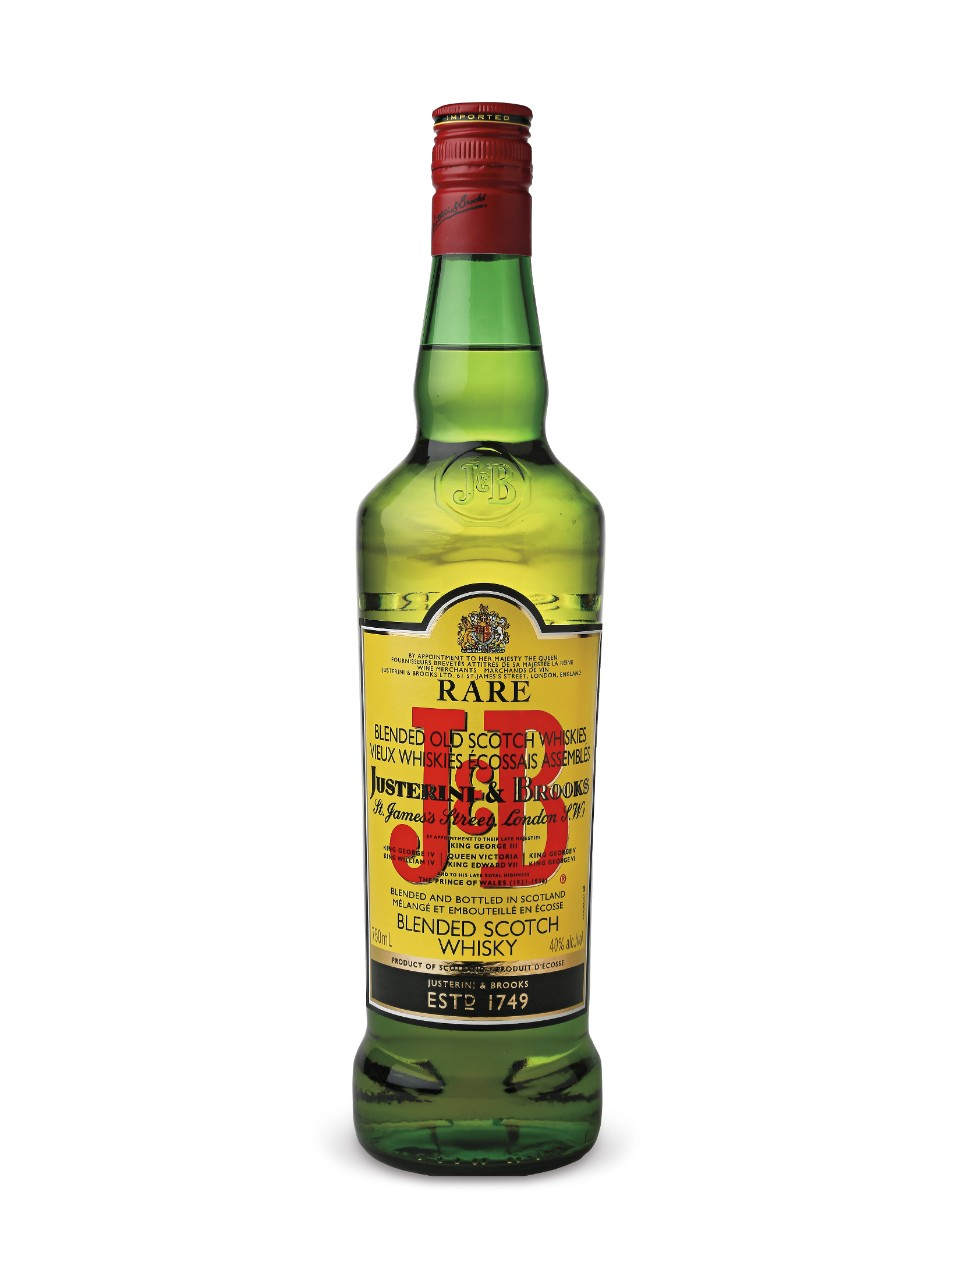 J & B Rare Scotch Whisky from LCBO